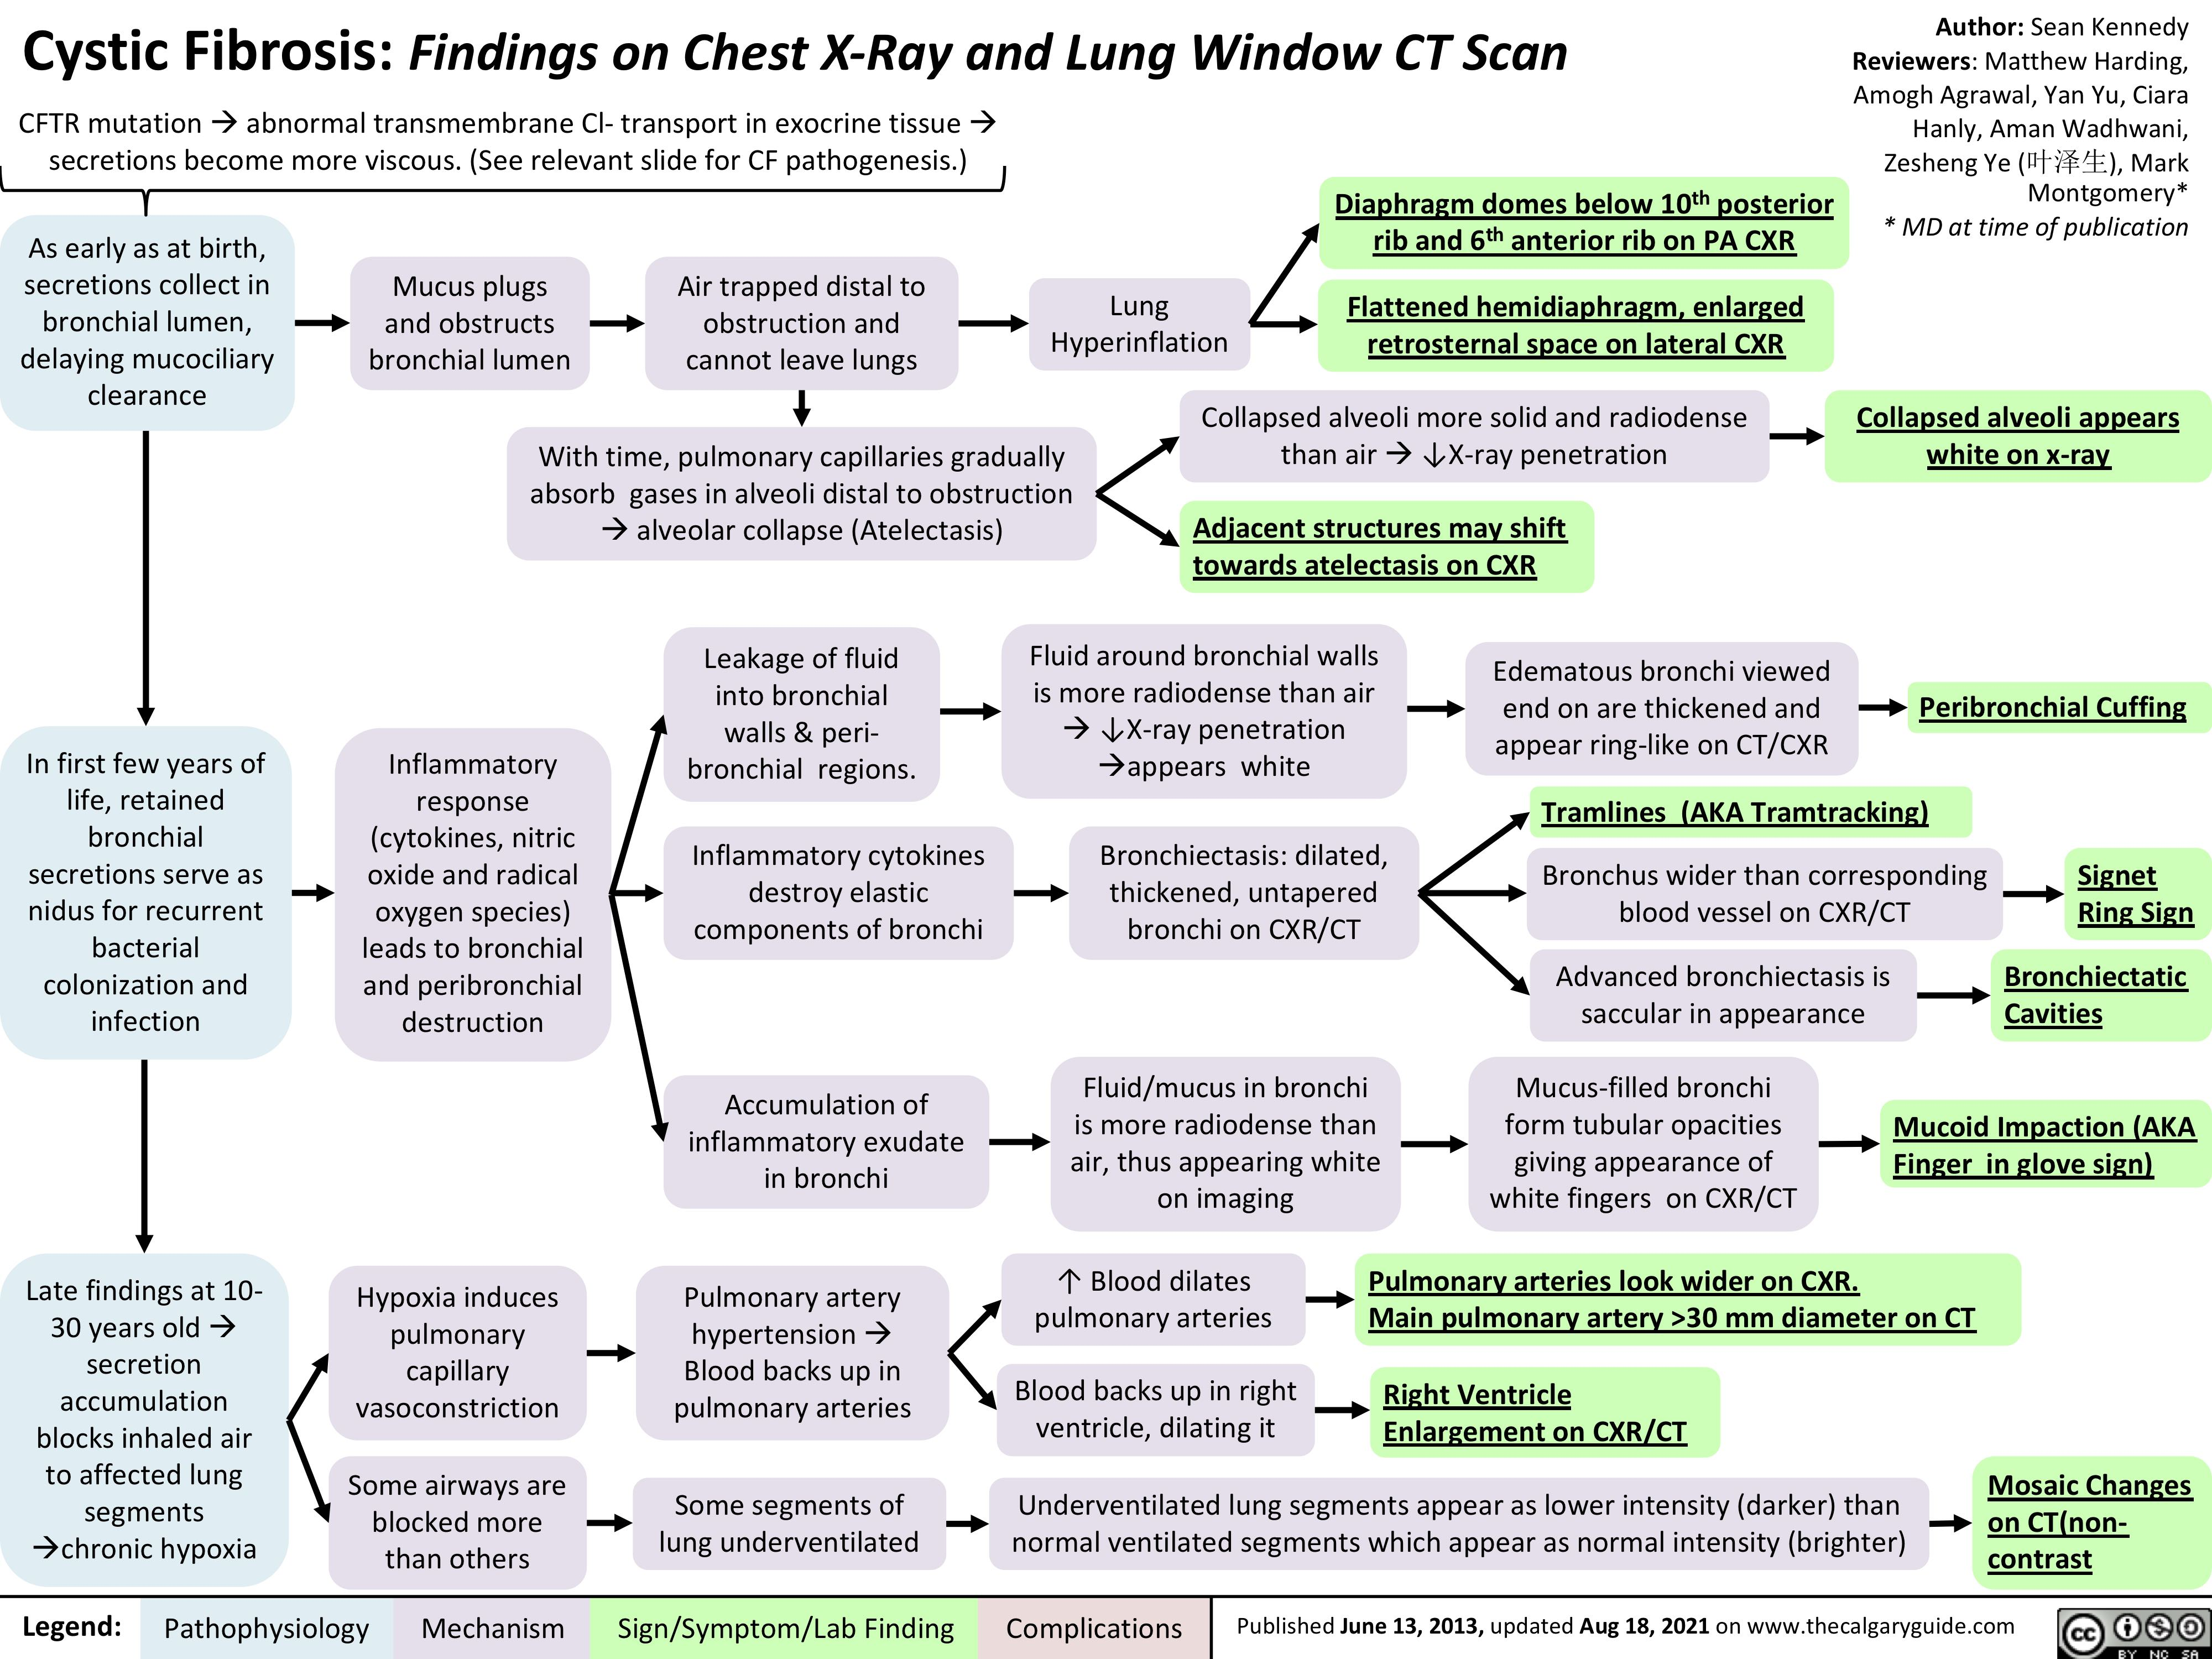 cystic-fibrosis-findings-on-chest-x-ray-and-lung-window-ct-scan